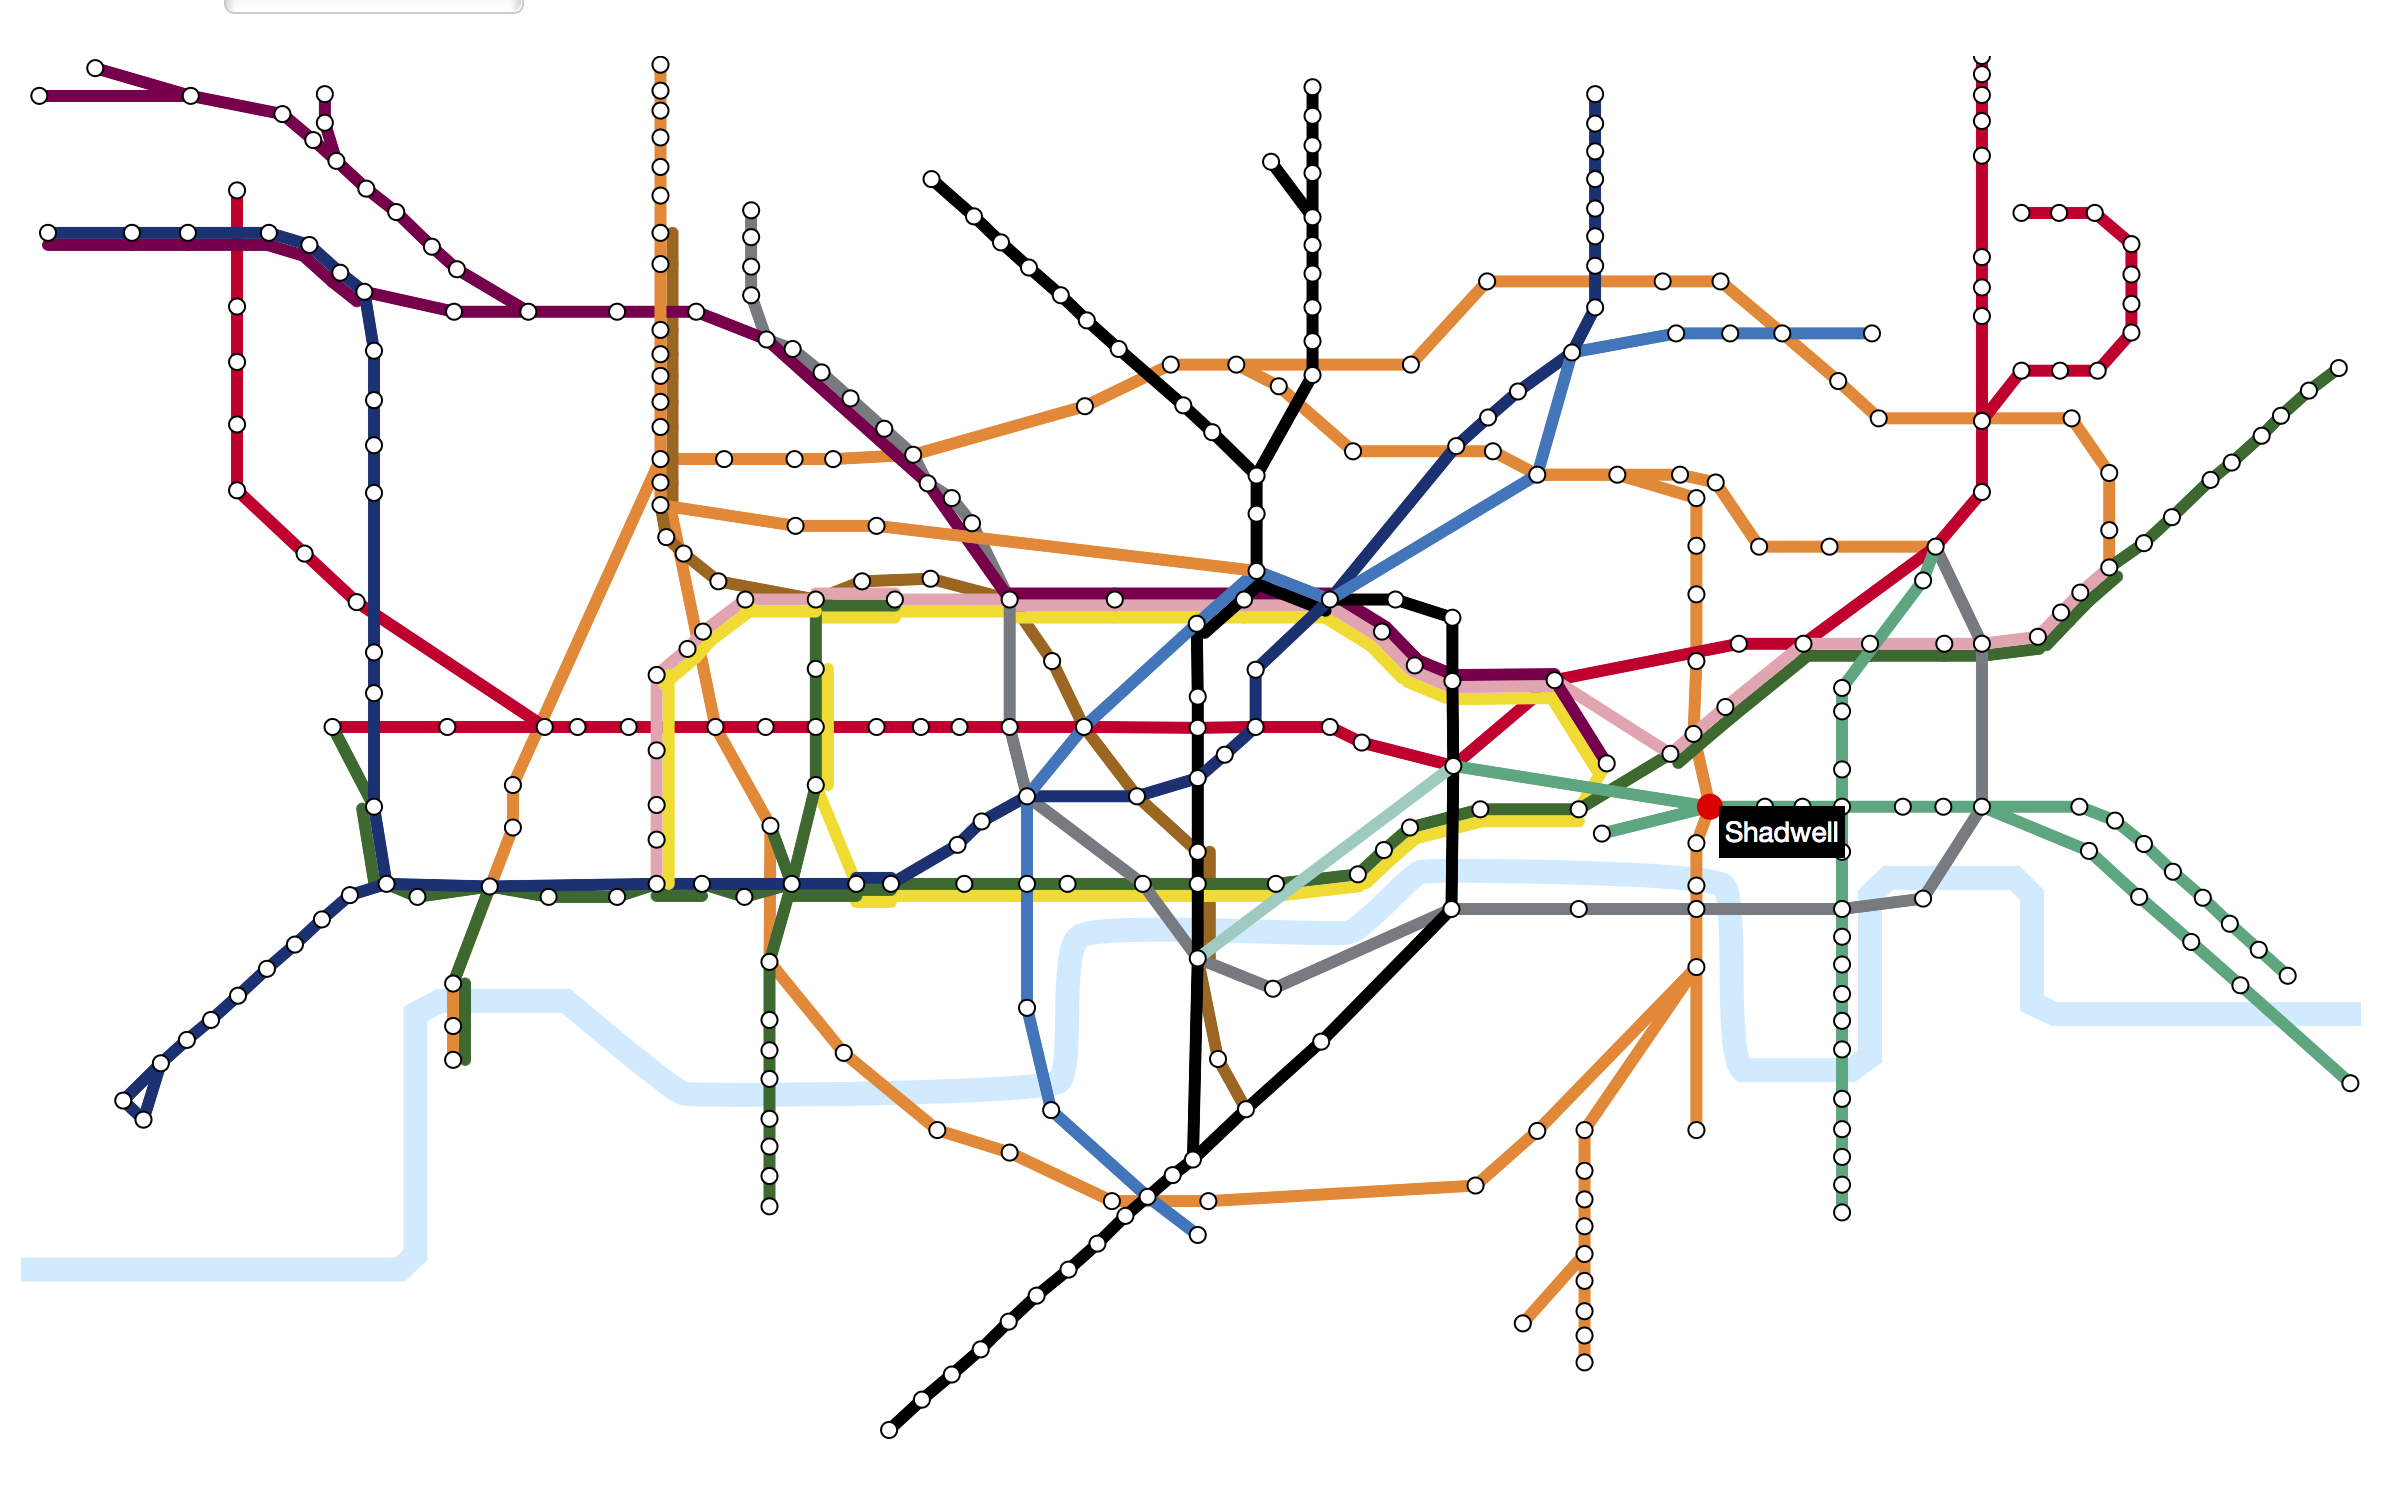 London property prices by tube line — Information is